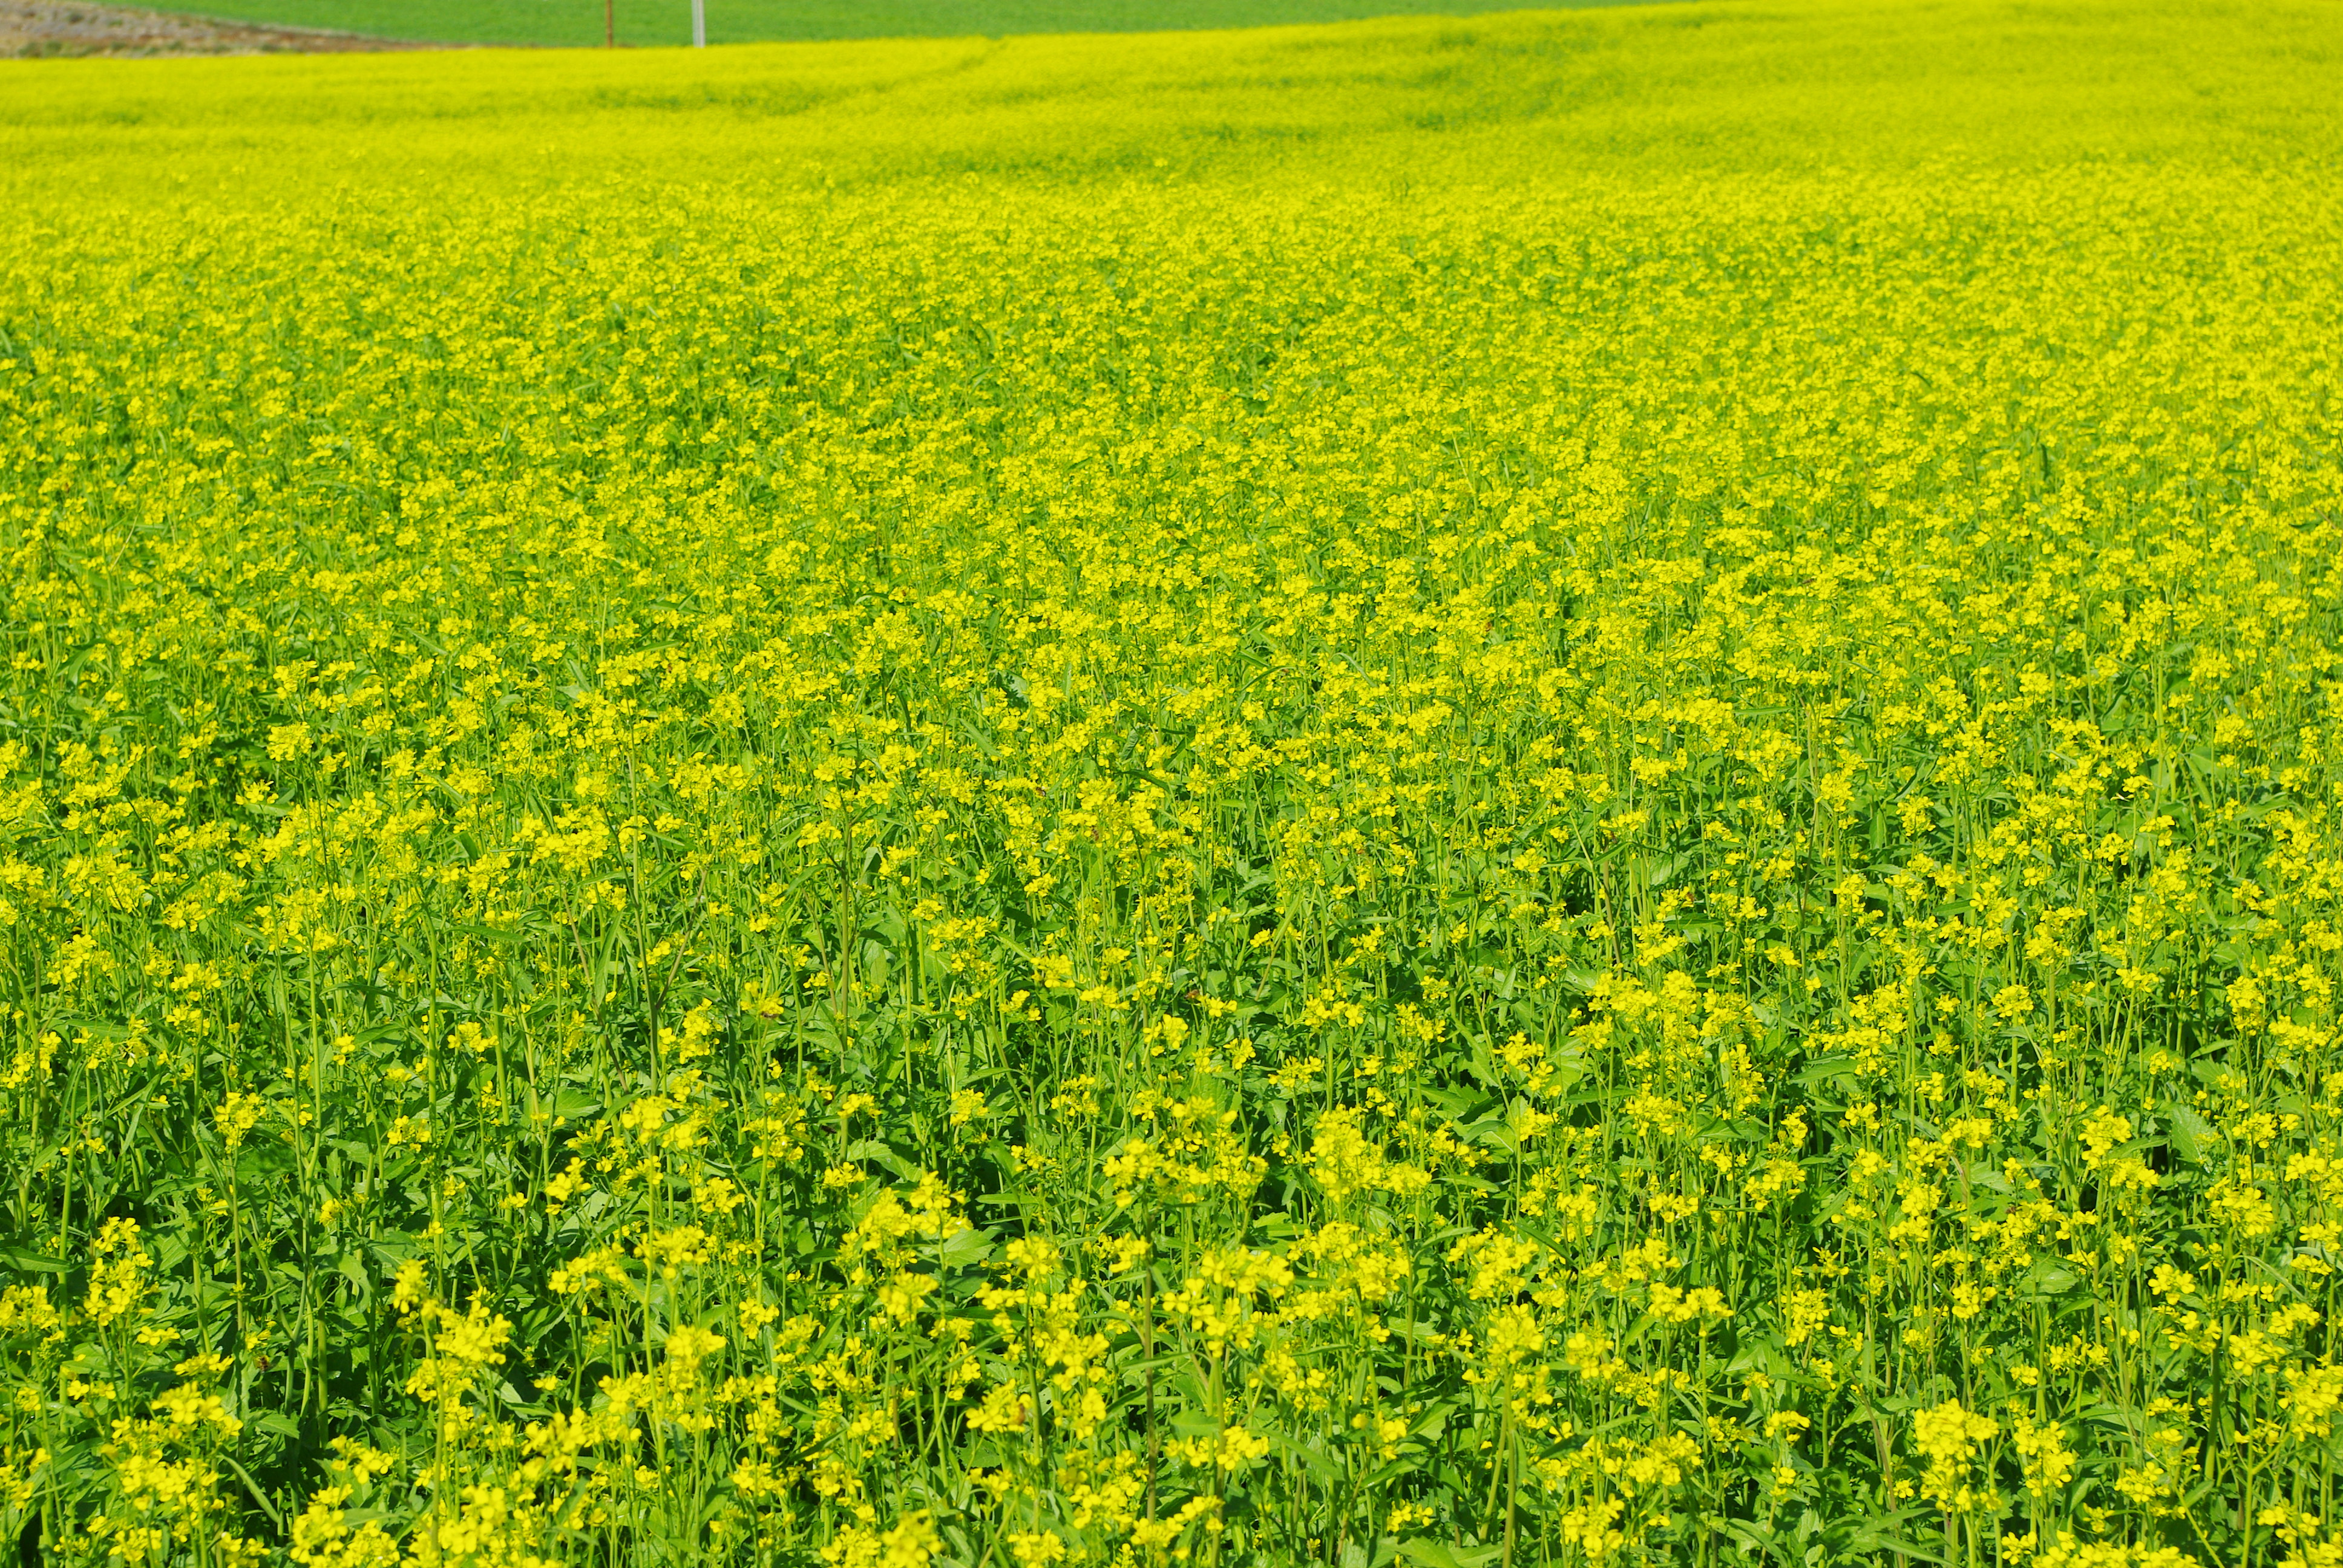 Mustard Crop Images Galleries With A